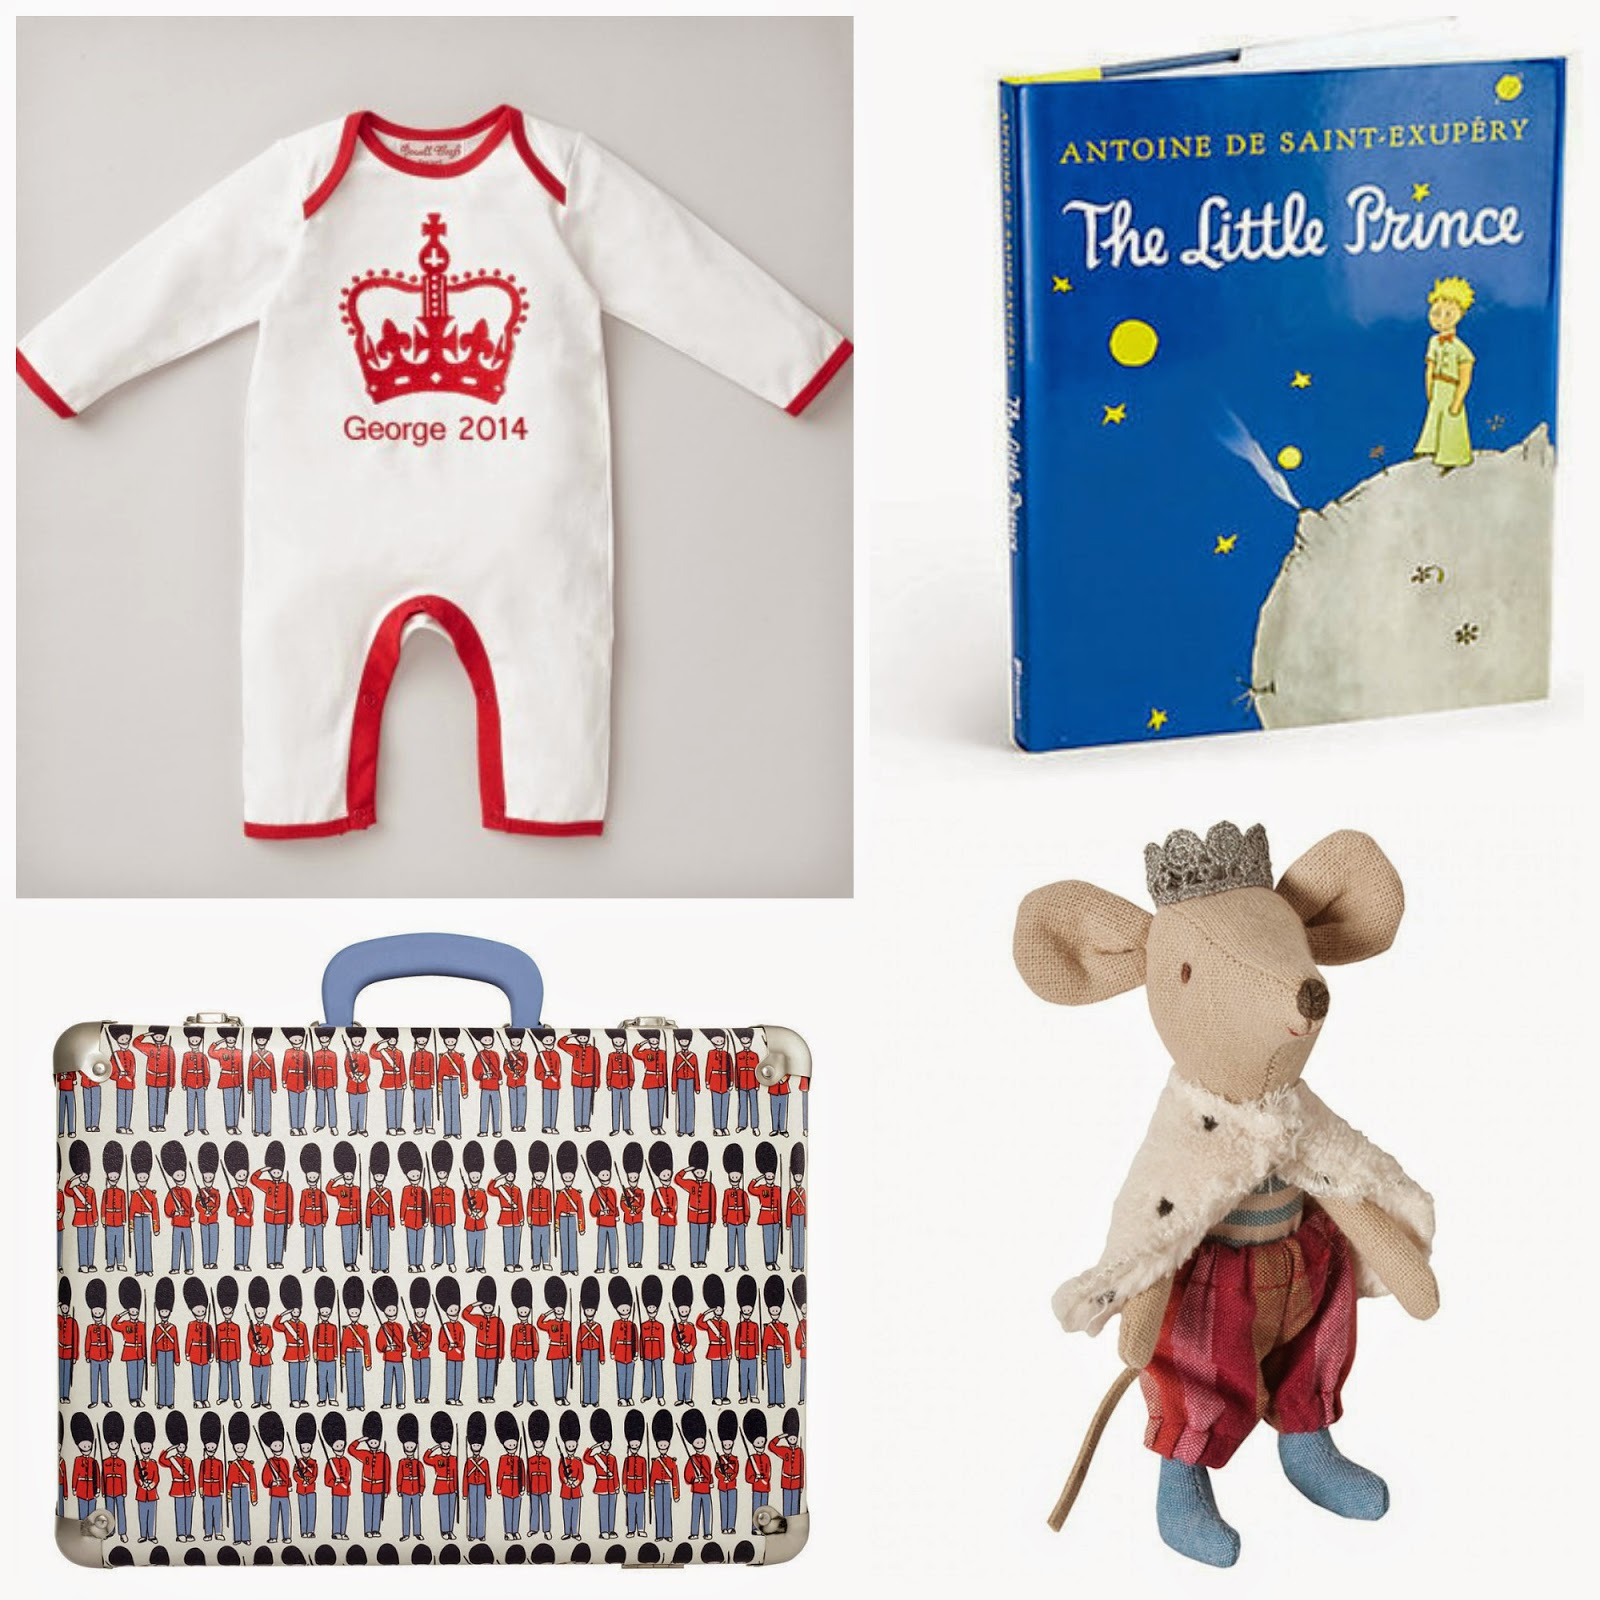 Brilliant 1st Birthday ts fit for a Little Prince